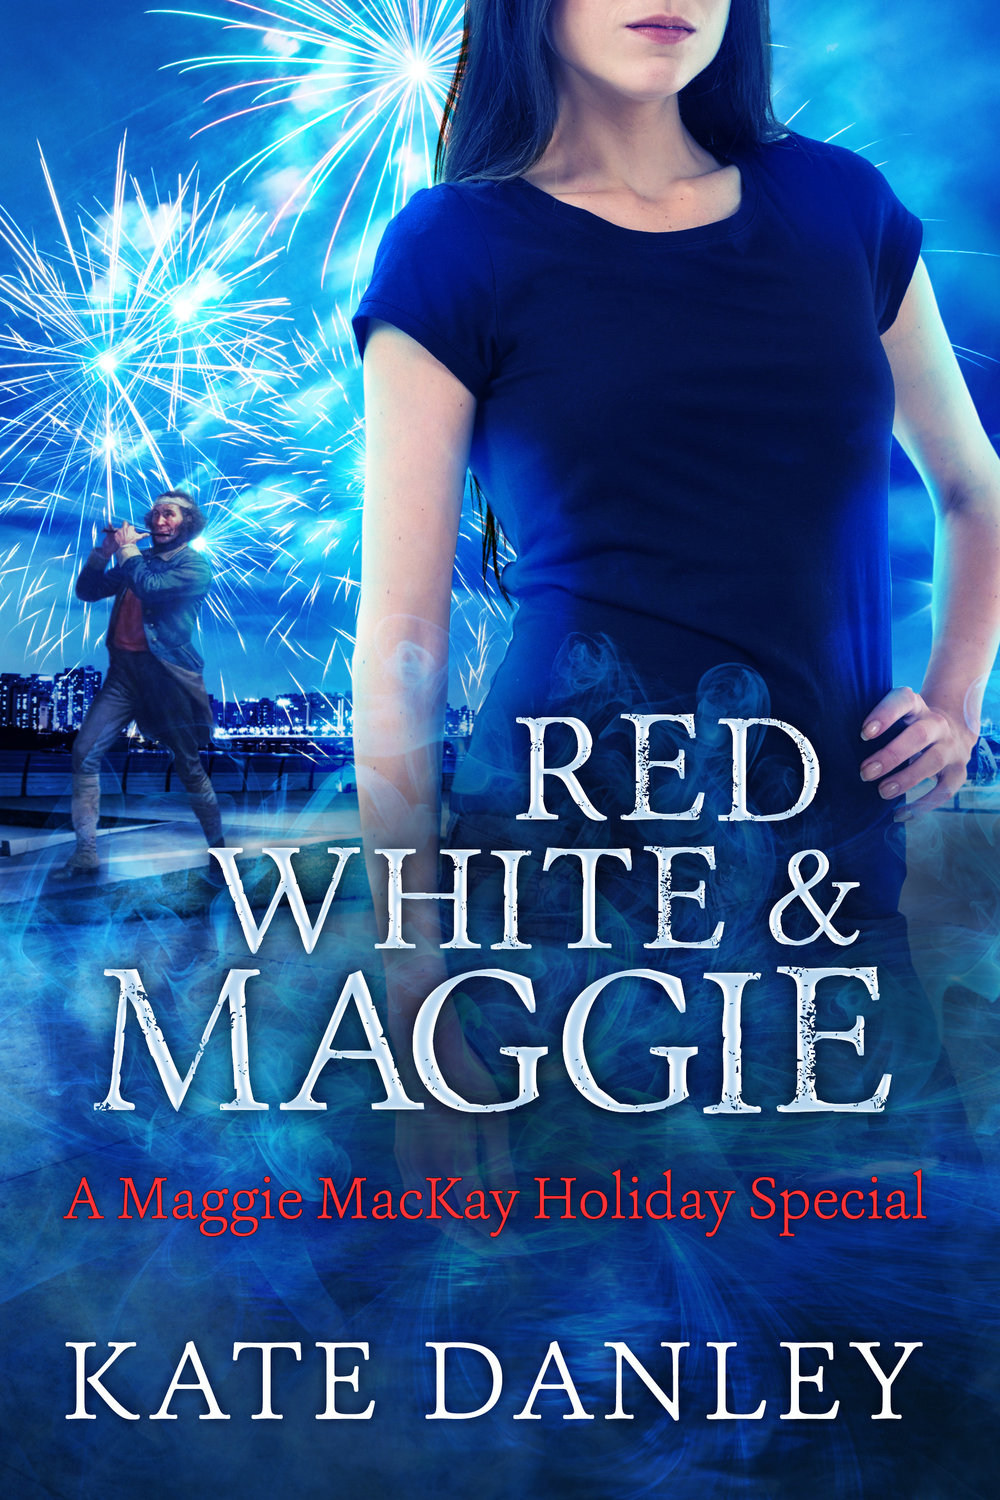 Red White & Maggie_ebook.jpg